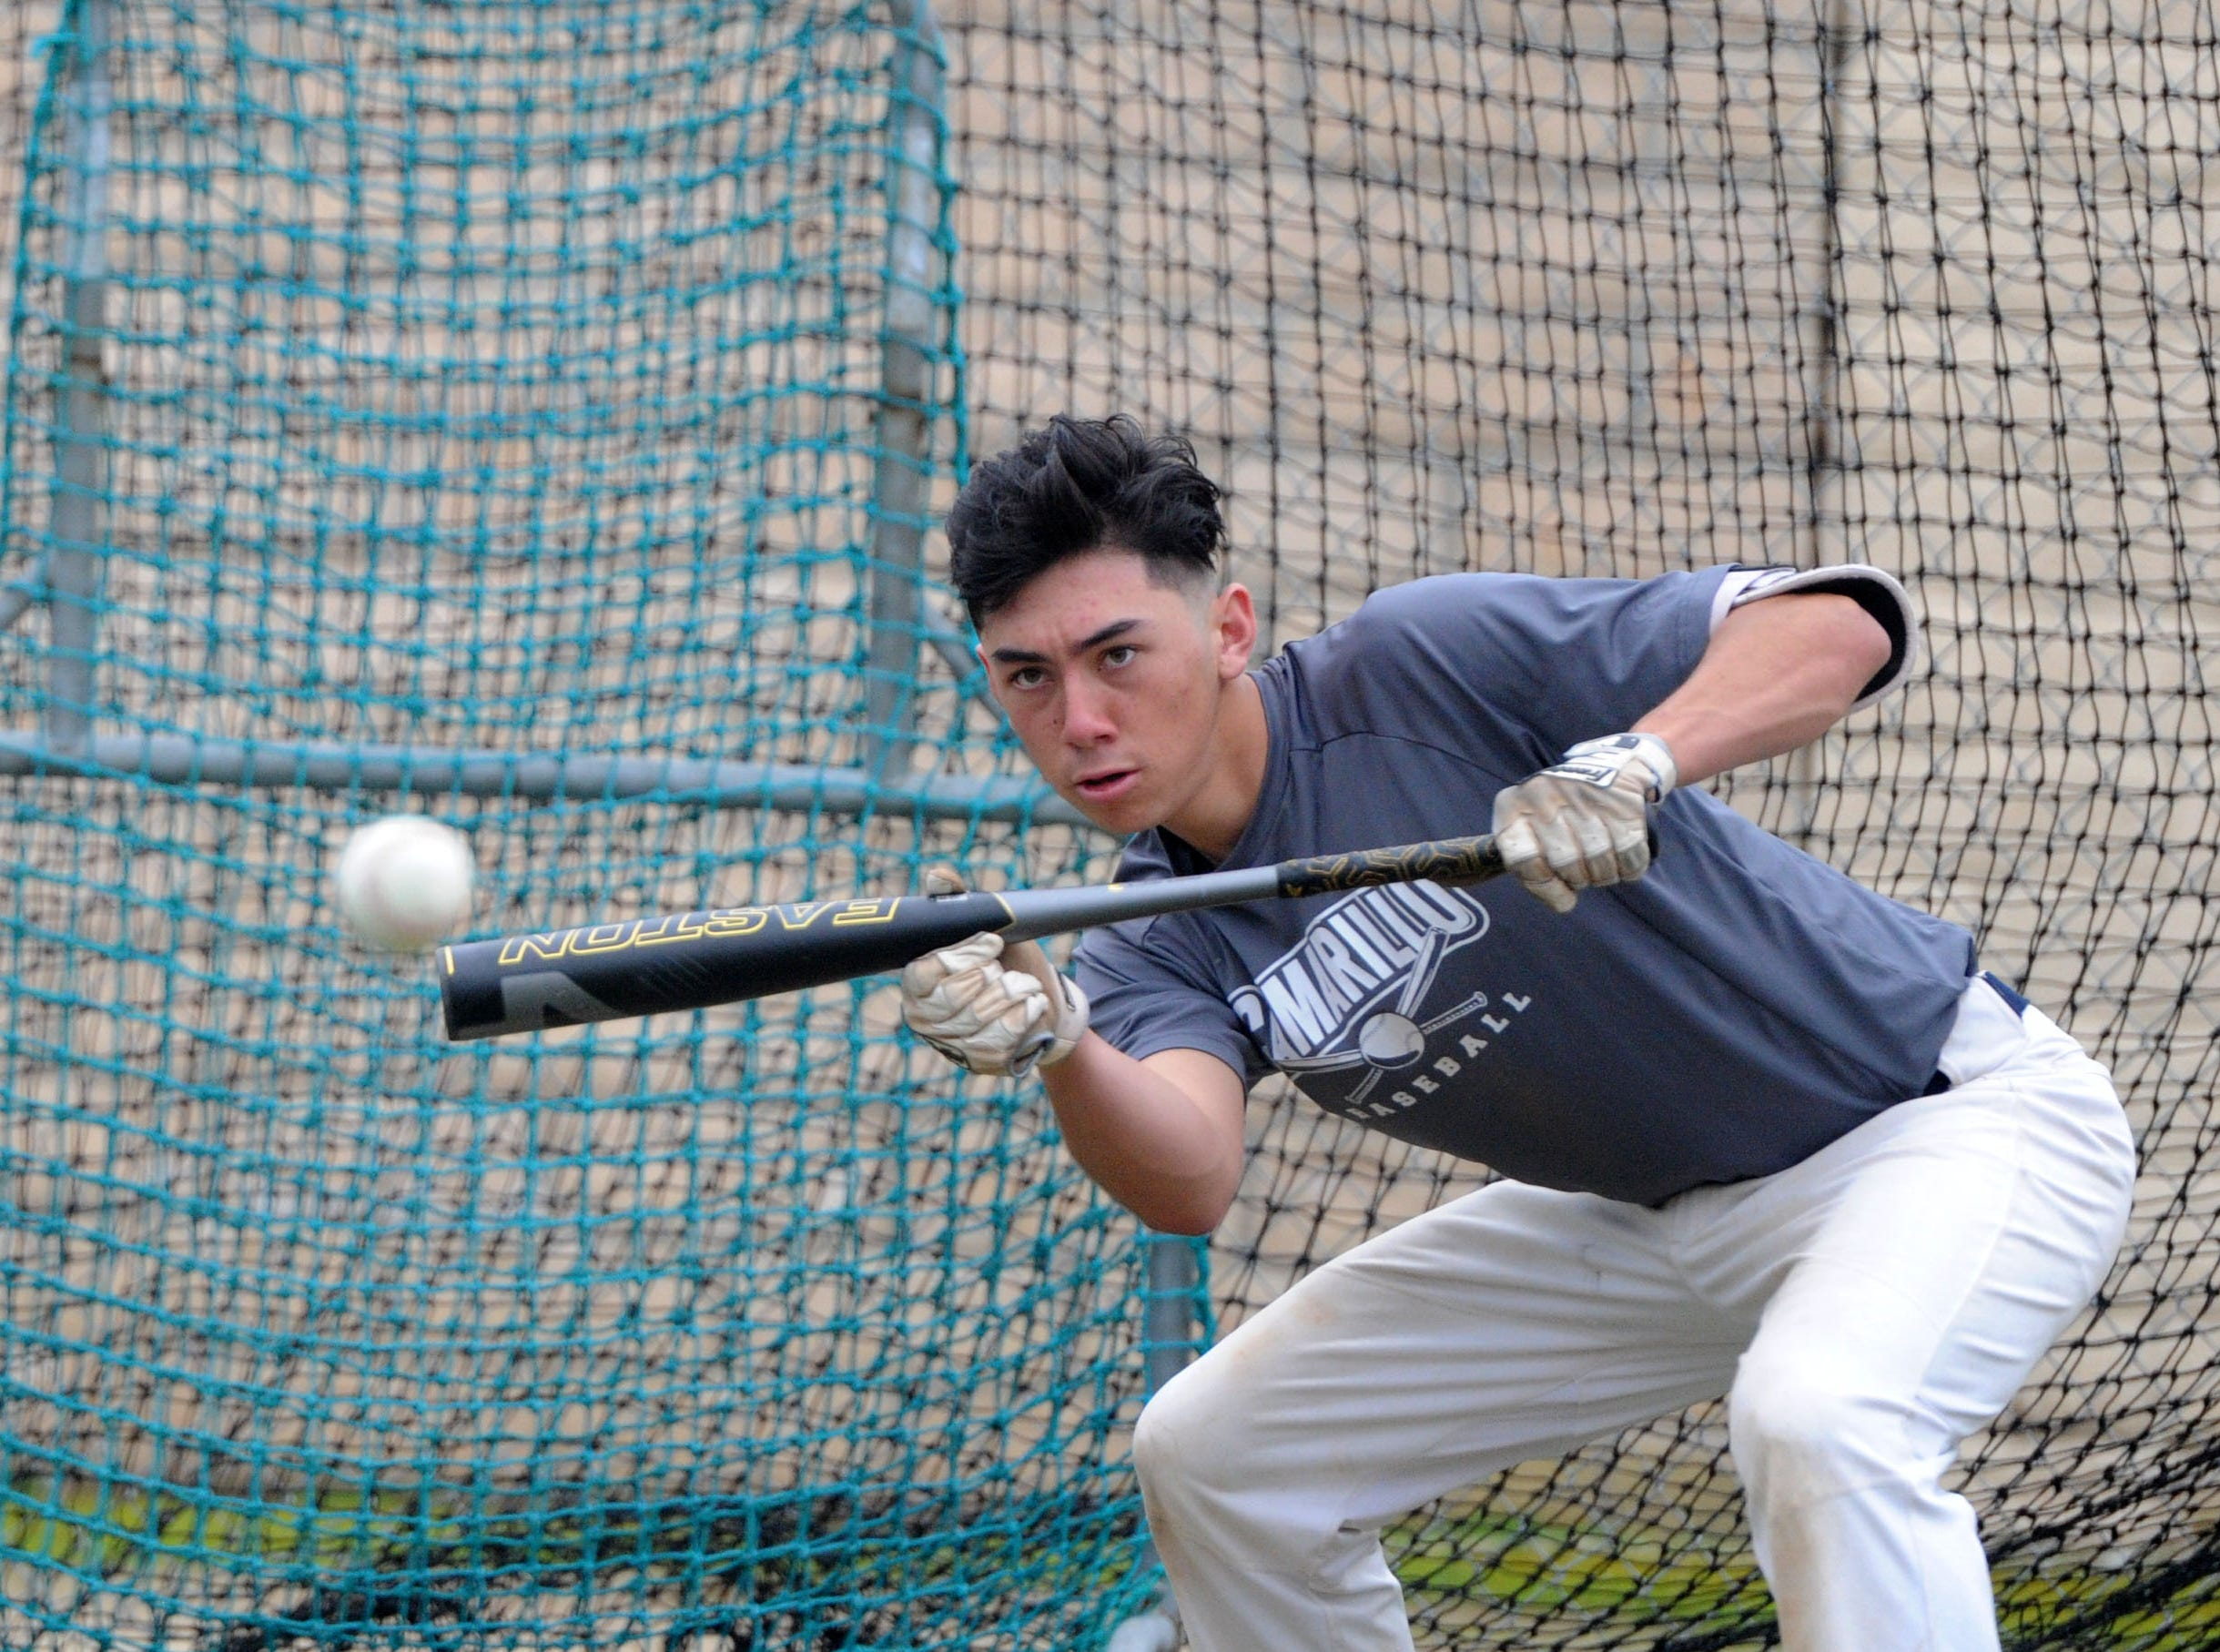 Kaden Tsuji practices his bunting at Camarillo High's practice on Wednesday.